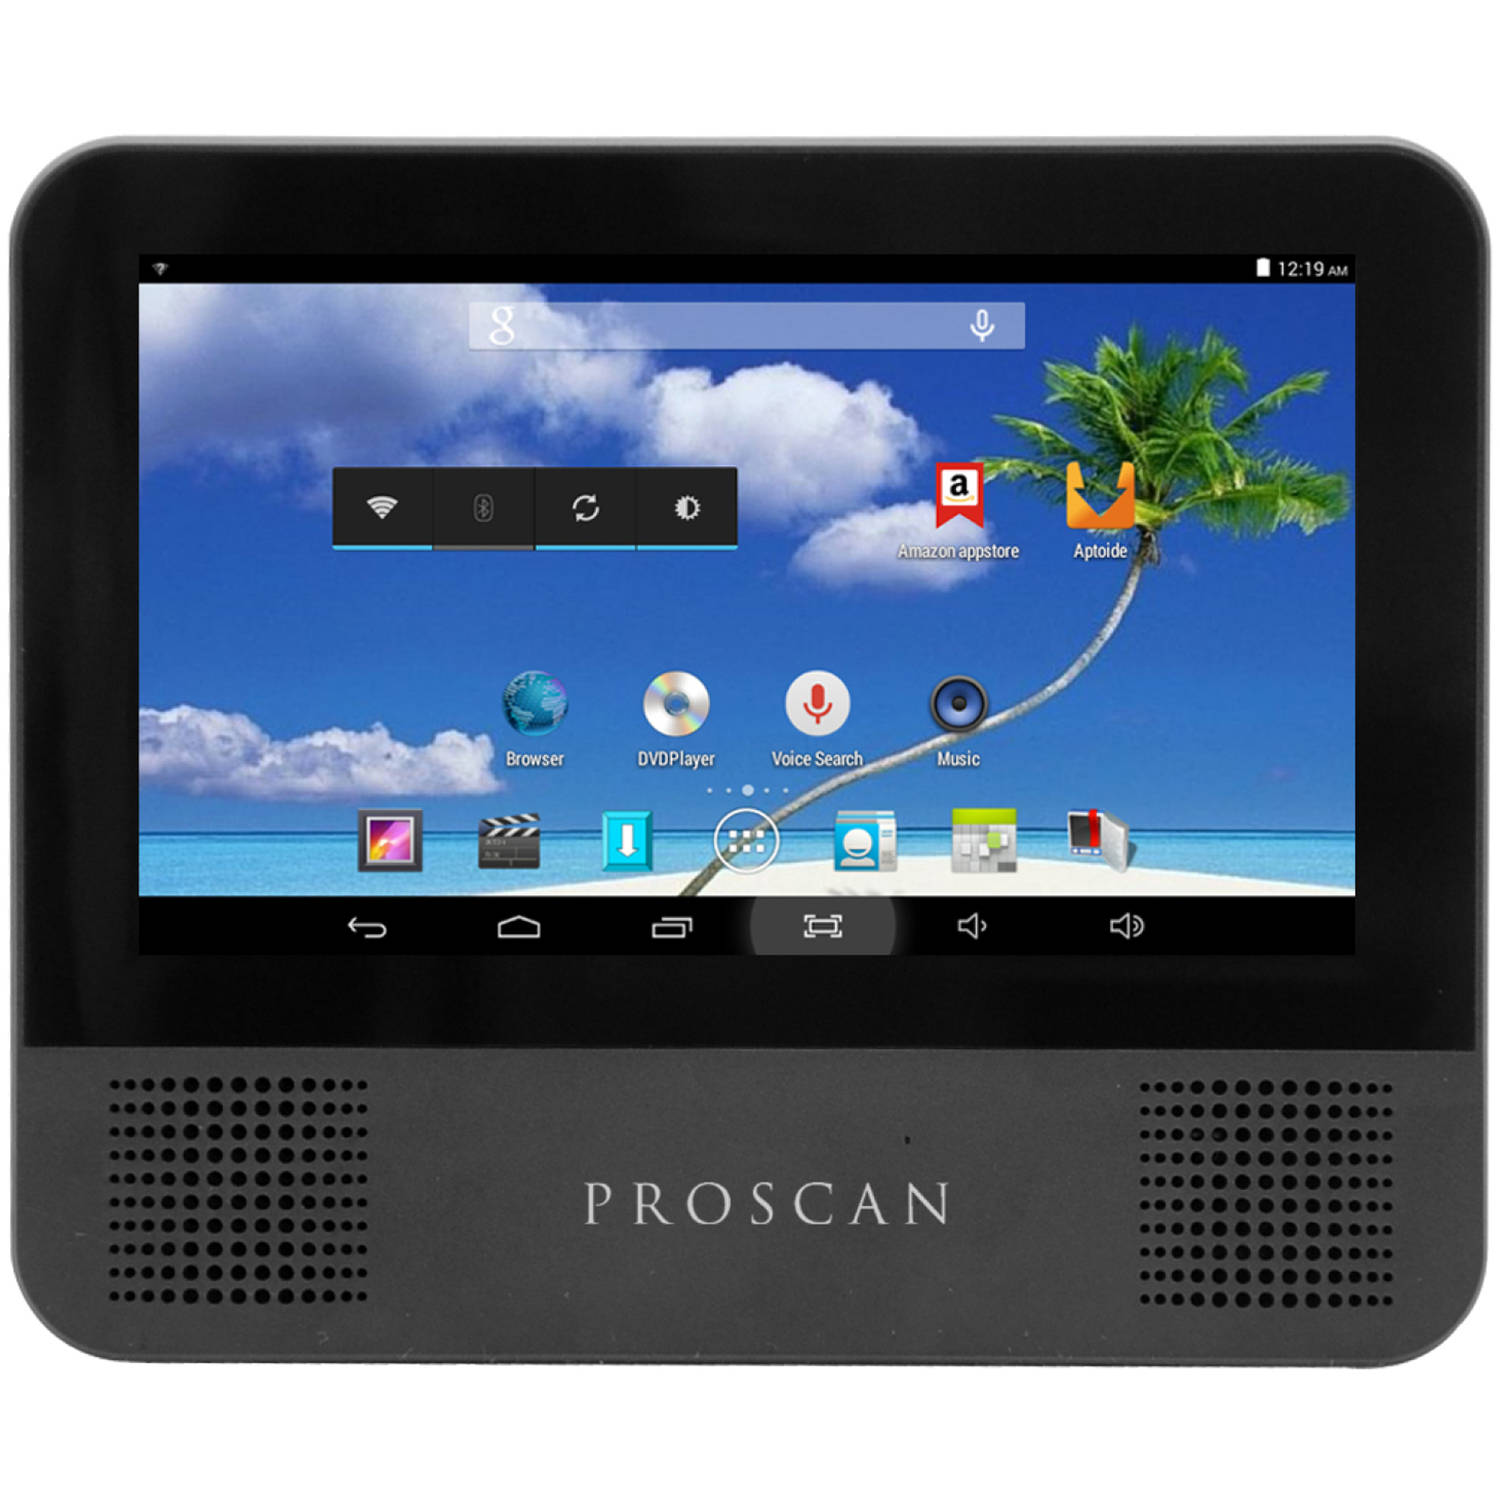 "Proscan with WiFi 7"" Touchscreen Tablet PC Featuring Android 4.4 (KitKat) Operating System, Black"